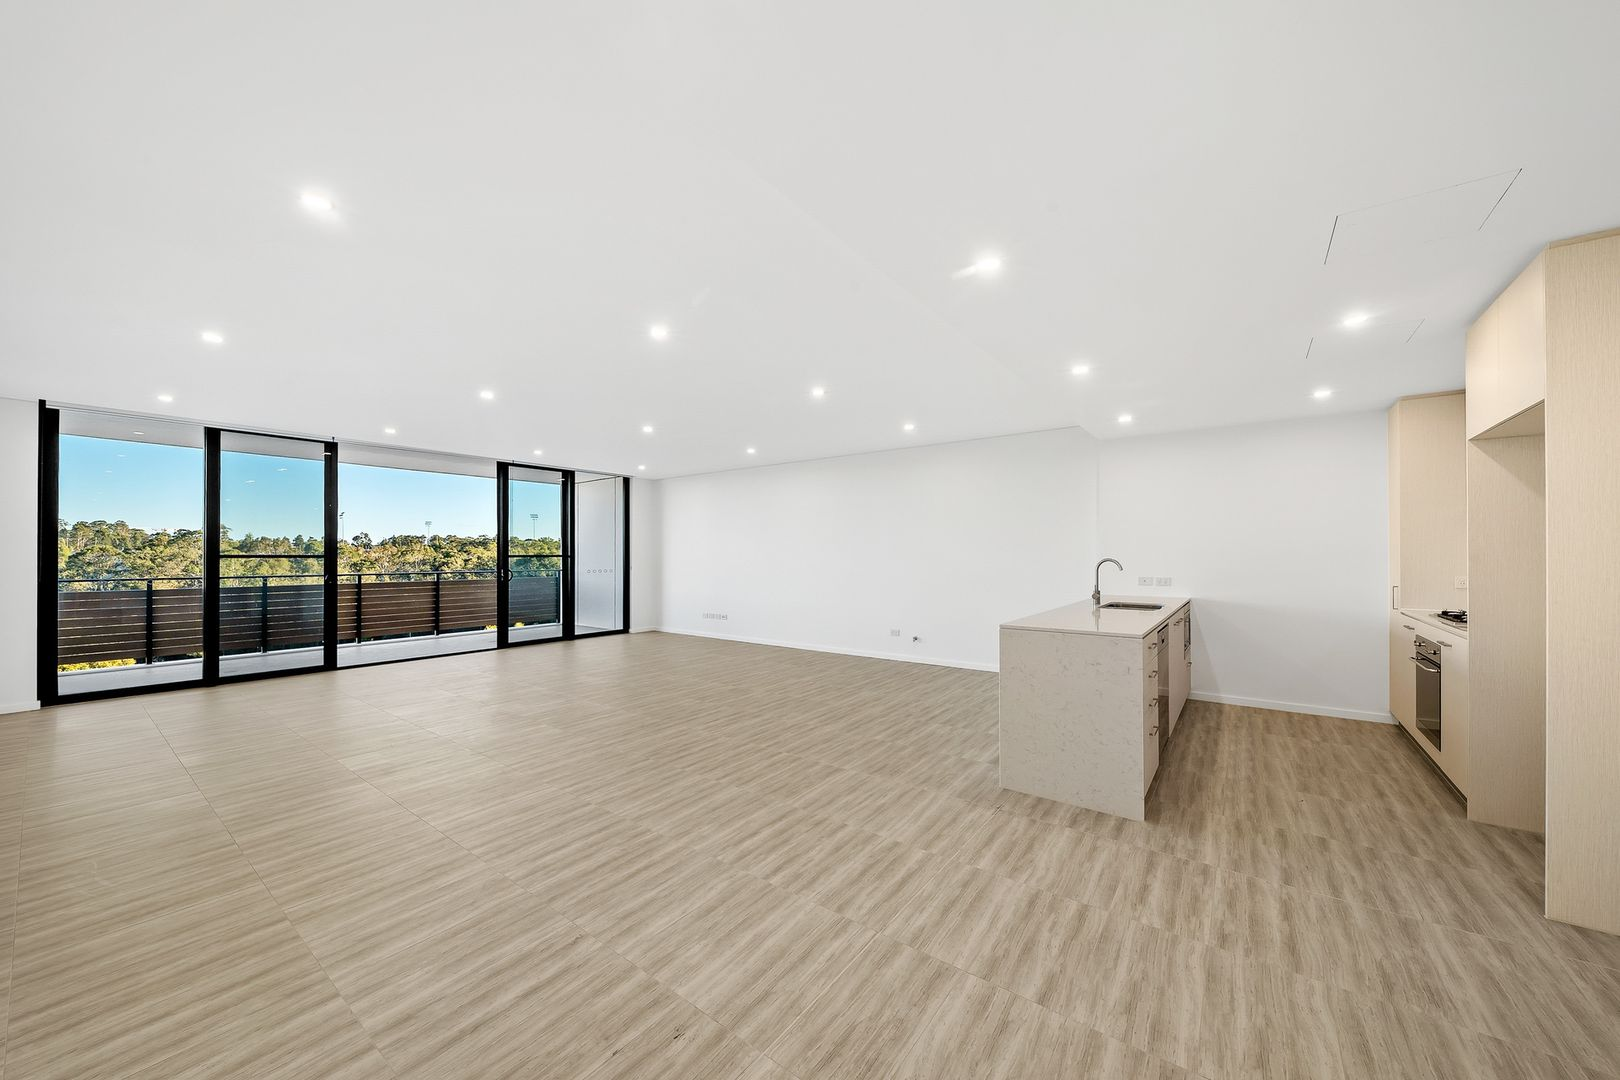 2 Bedrooms, Apartment, Leased, Caddies Boulevard, 2 Bathrooms, Listing ID 1424, Rouse Hill, NSW, Australia, 2155,